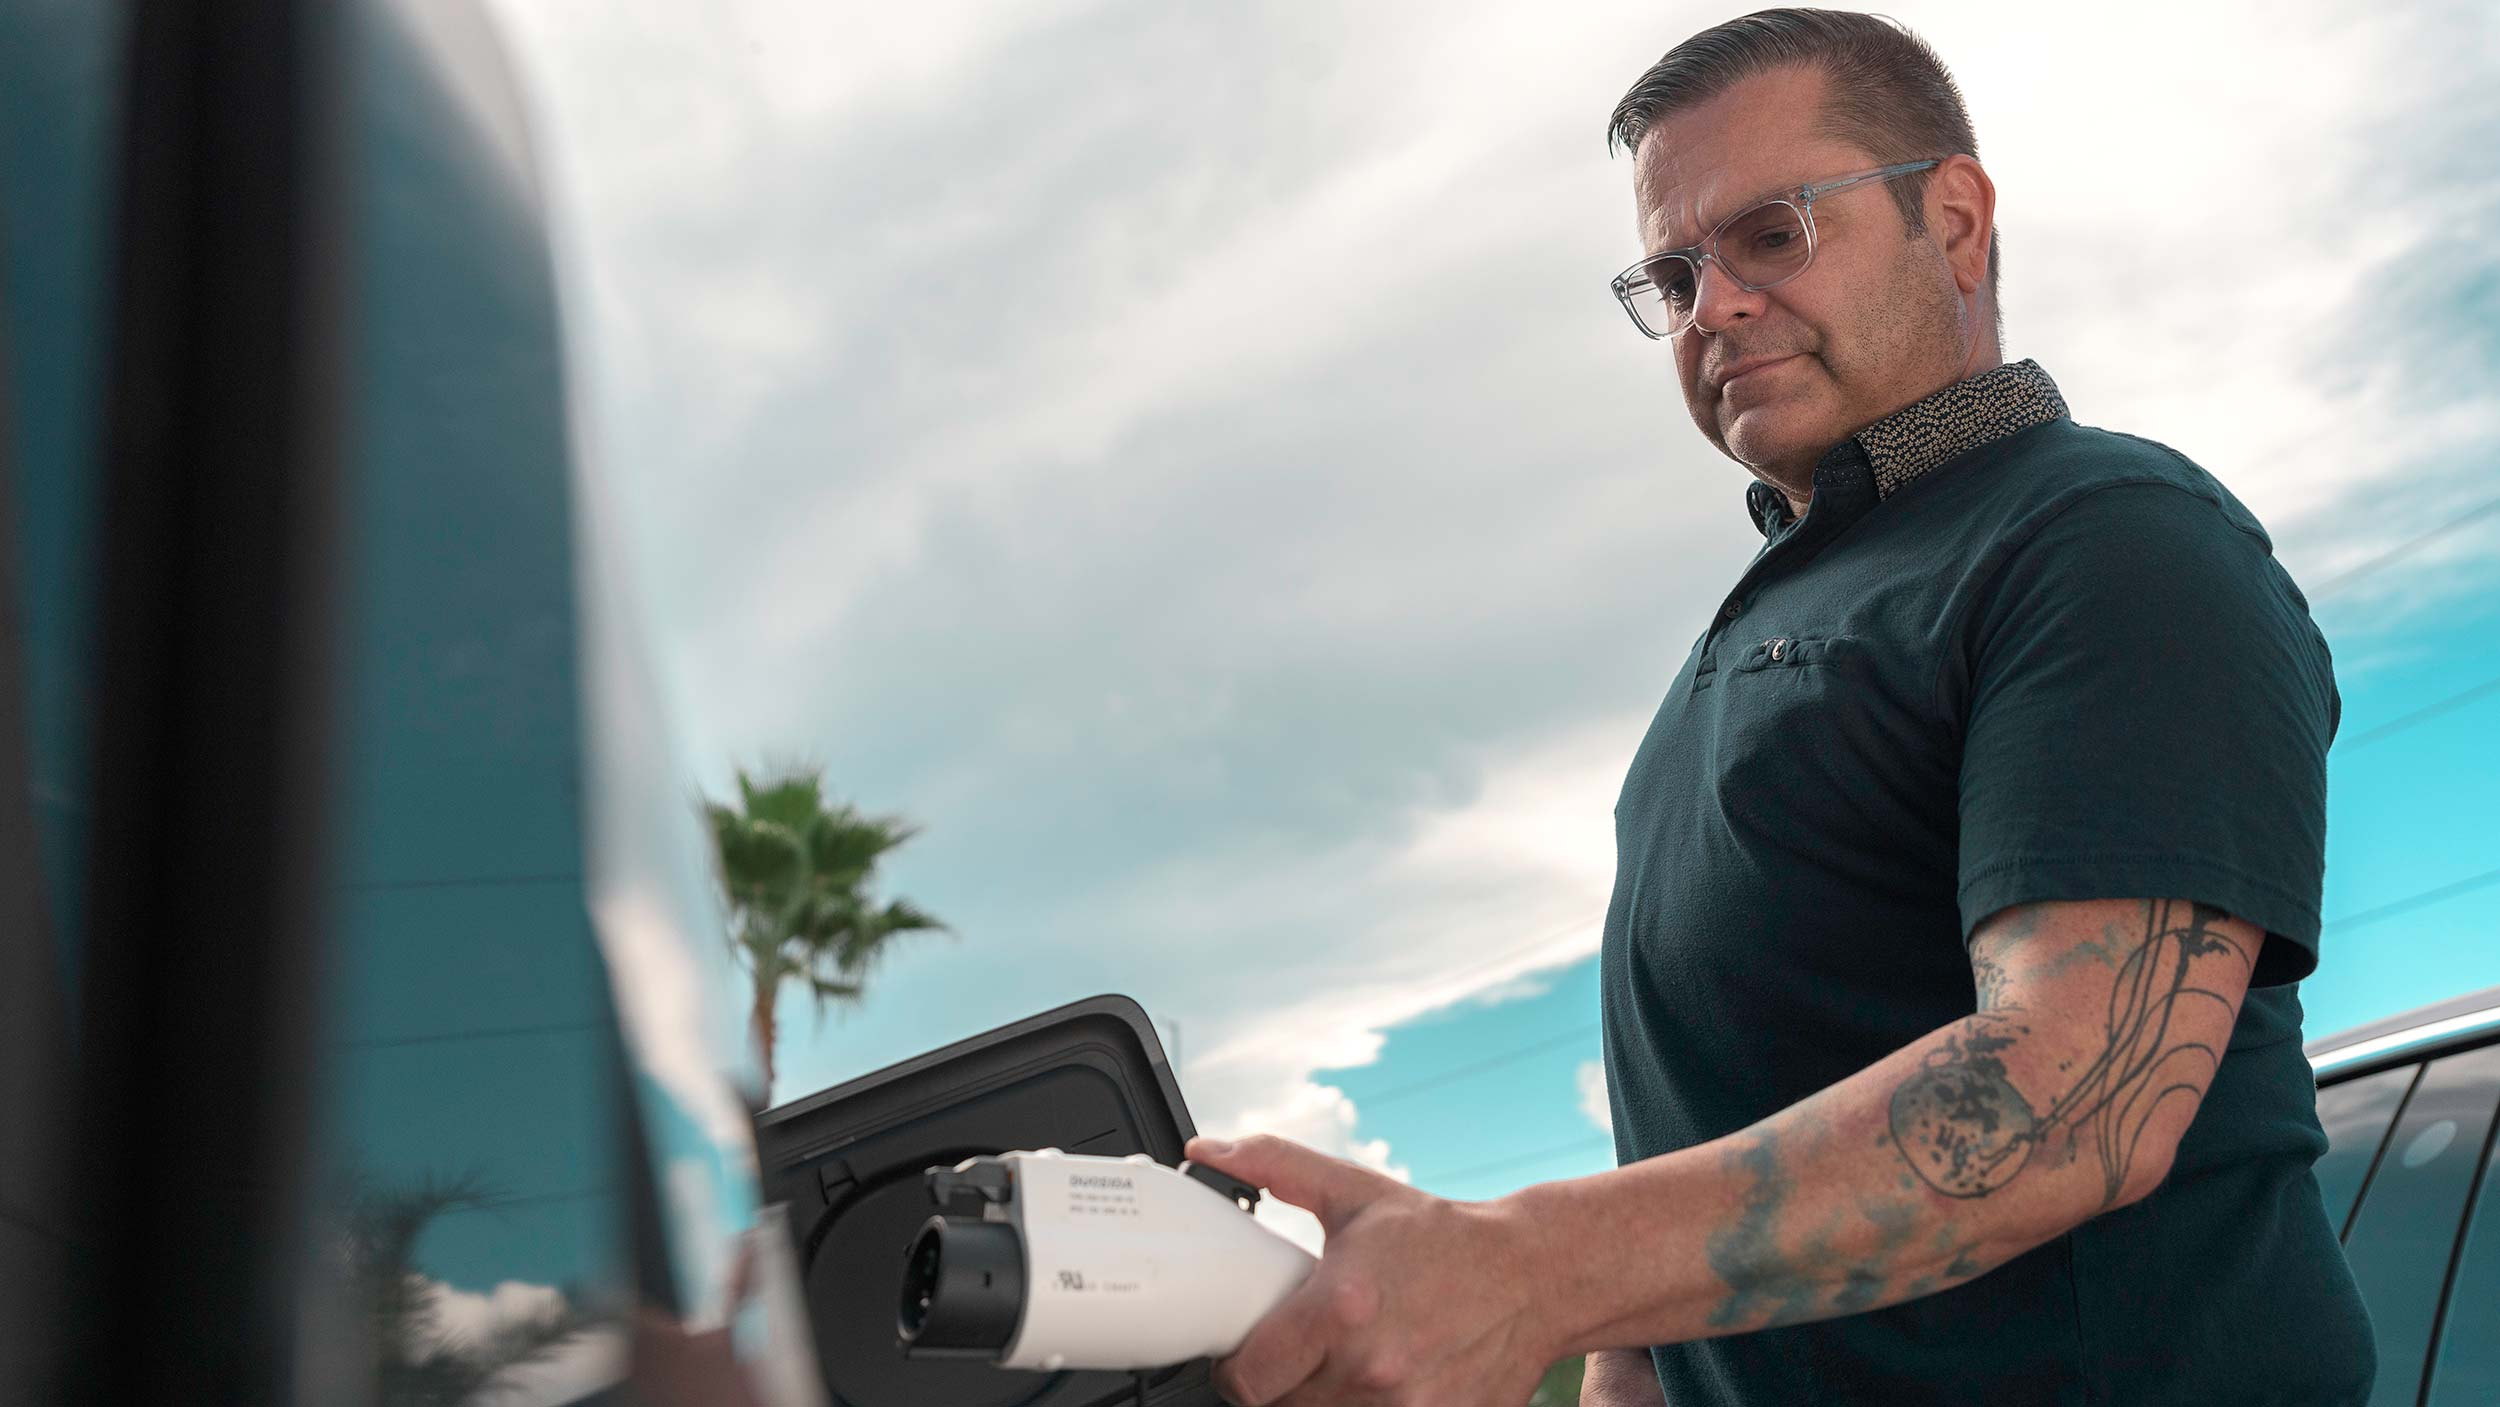 man with tattoos plugging electric car into charger